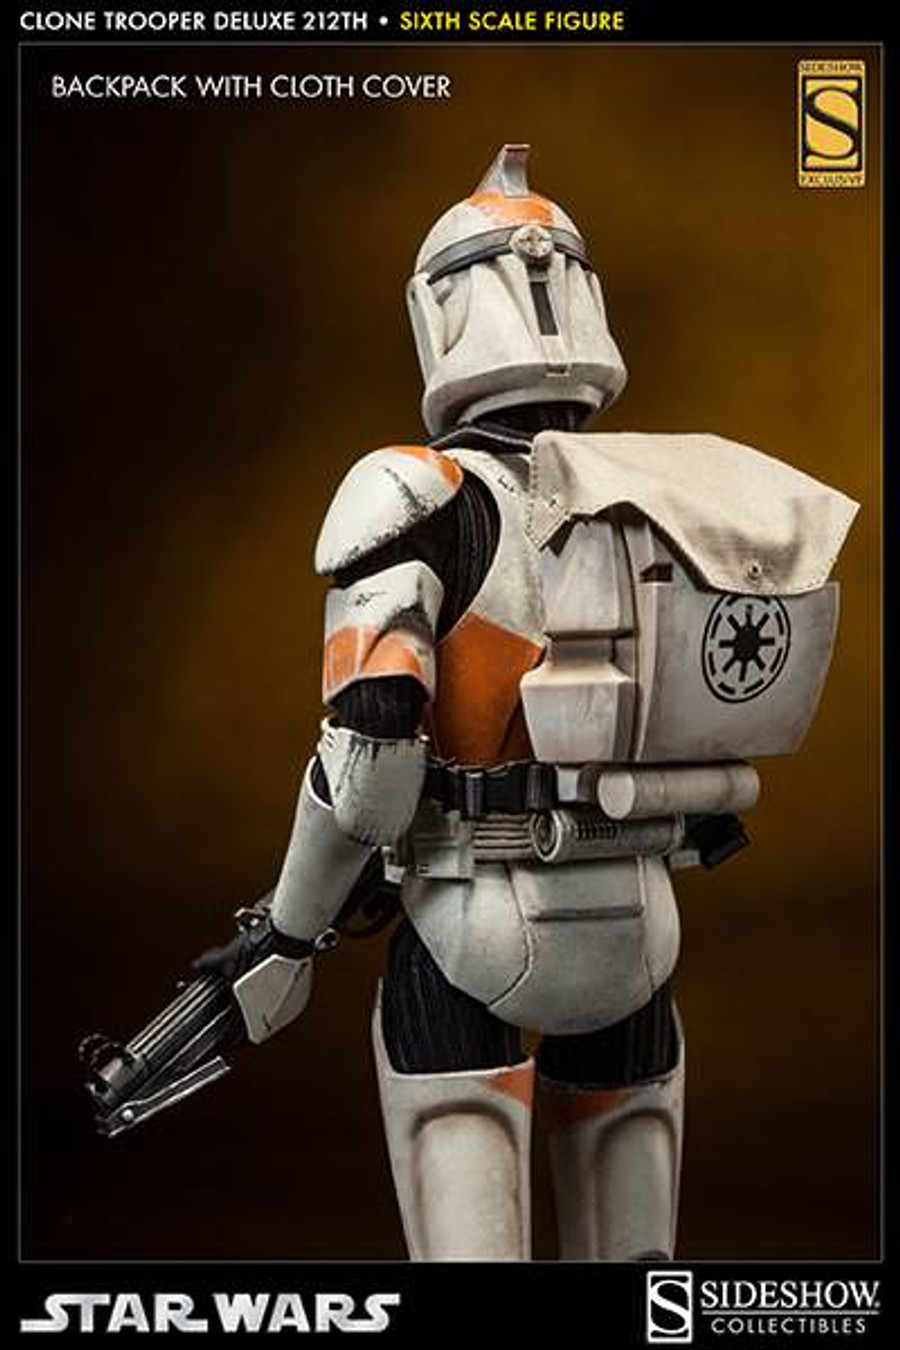 sideshow  star wars  clone trooper deluxe 212th  urban